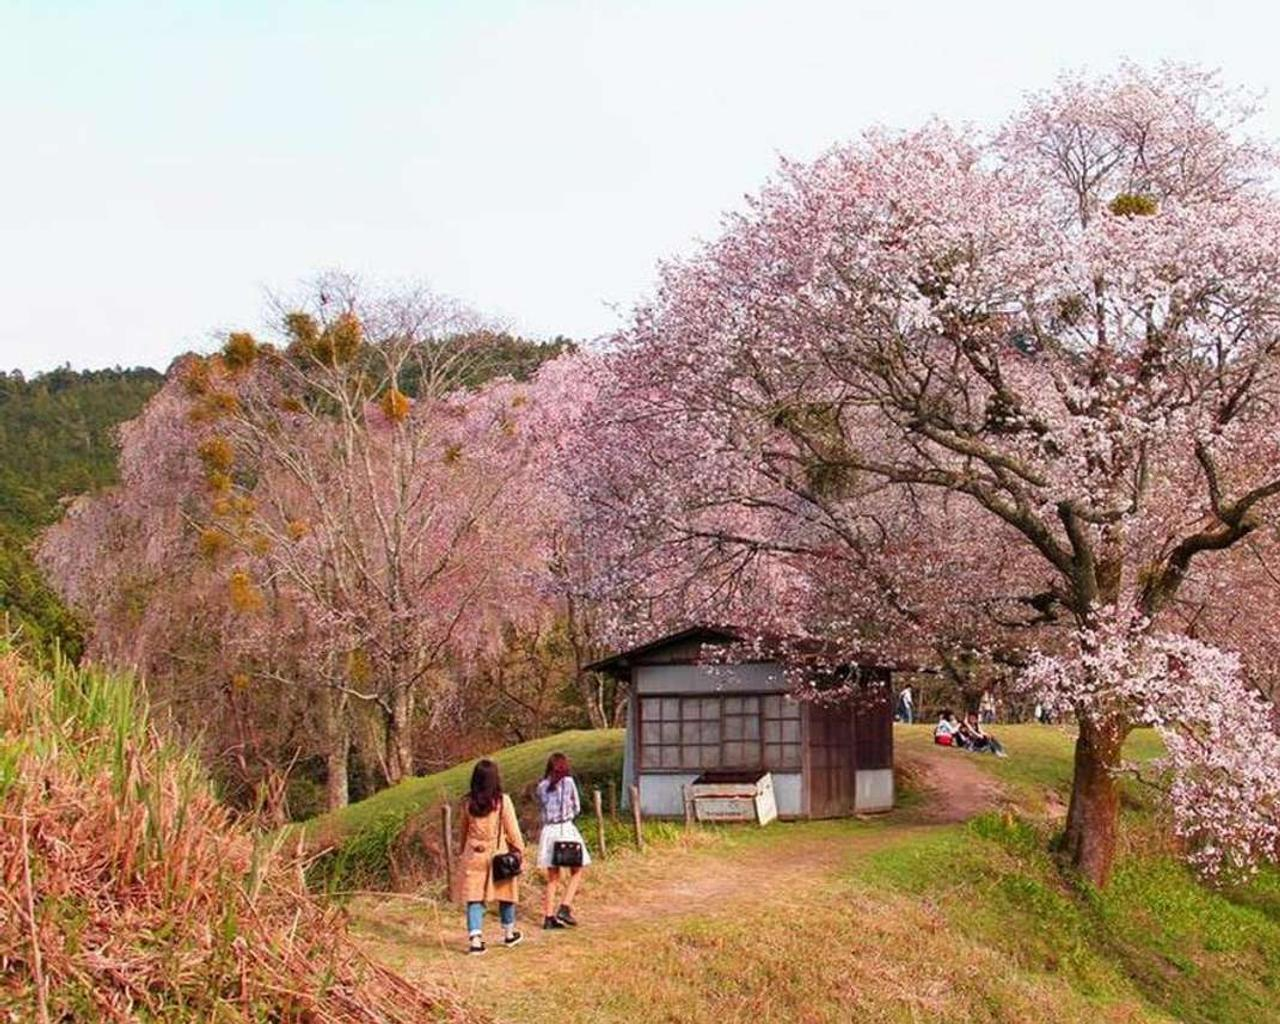 The timing of the Cherry eruption in Japan peaked at 1,200 years – and experts suspect climate change